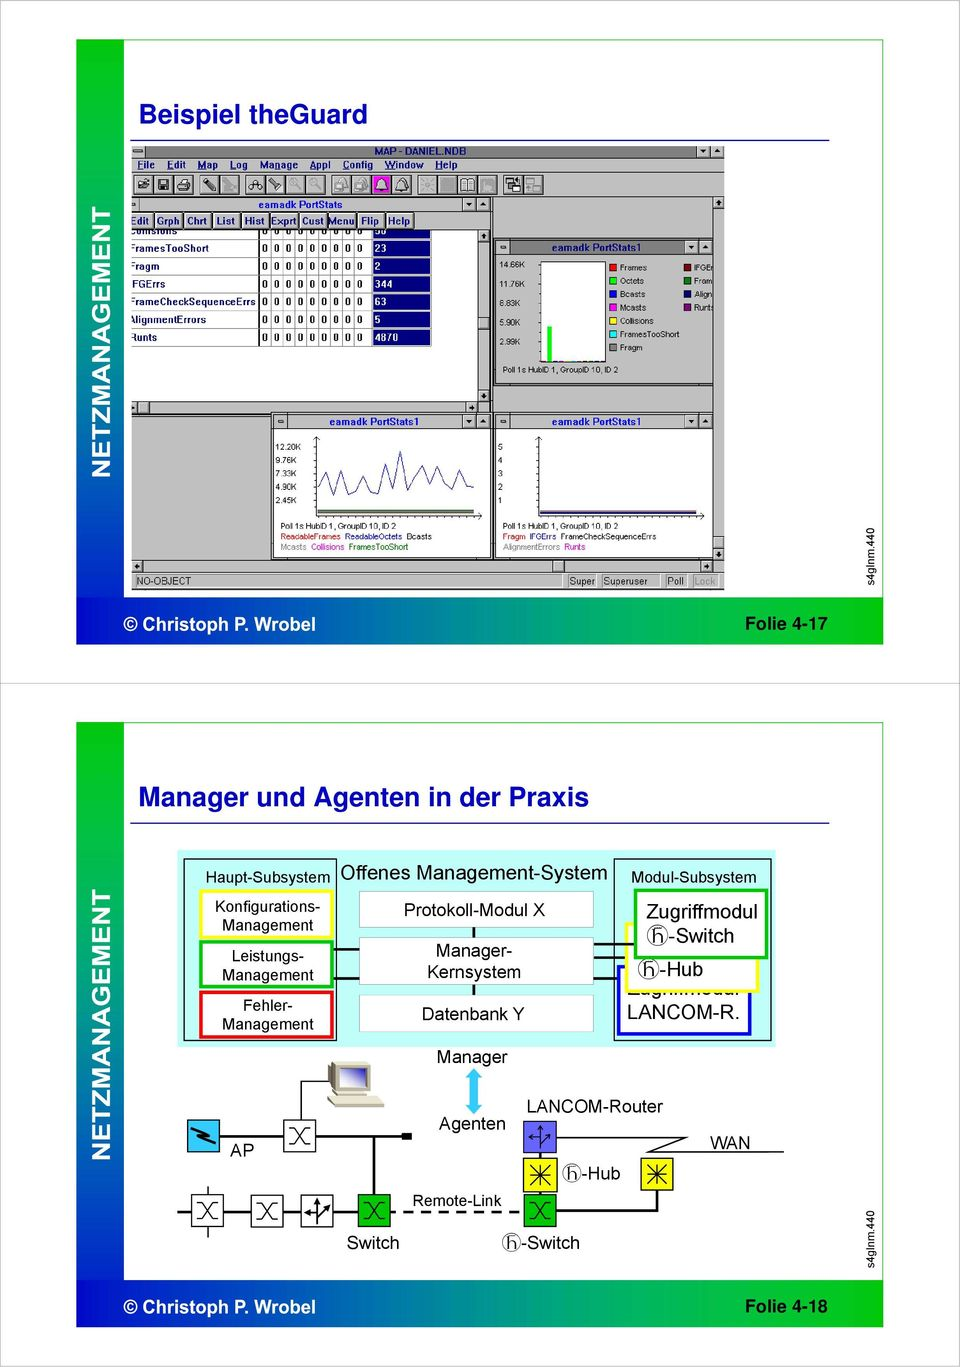 Manager- Kernsystem Datenbank Y Manager Modul-Subsystem Zugriffmodul Zugriffmodul ö-switch